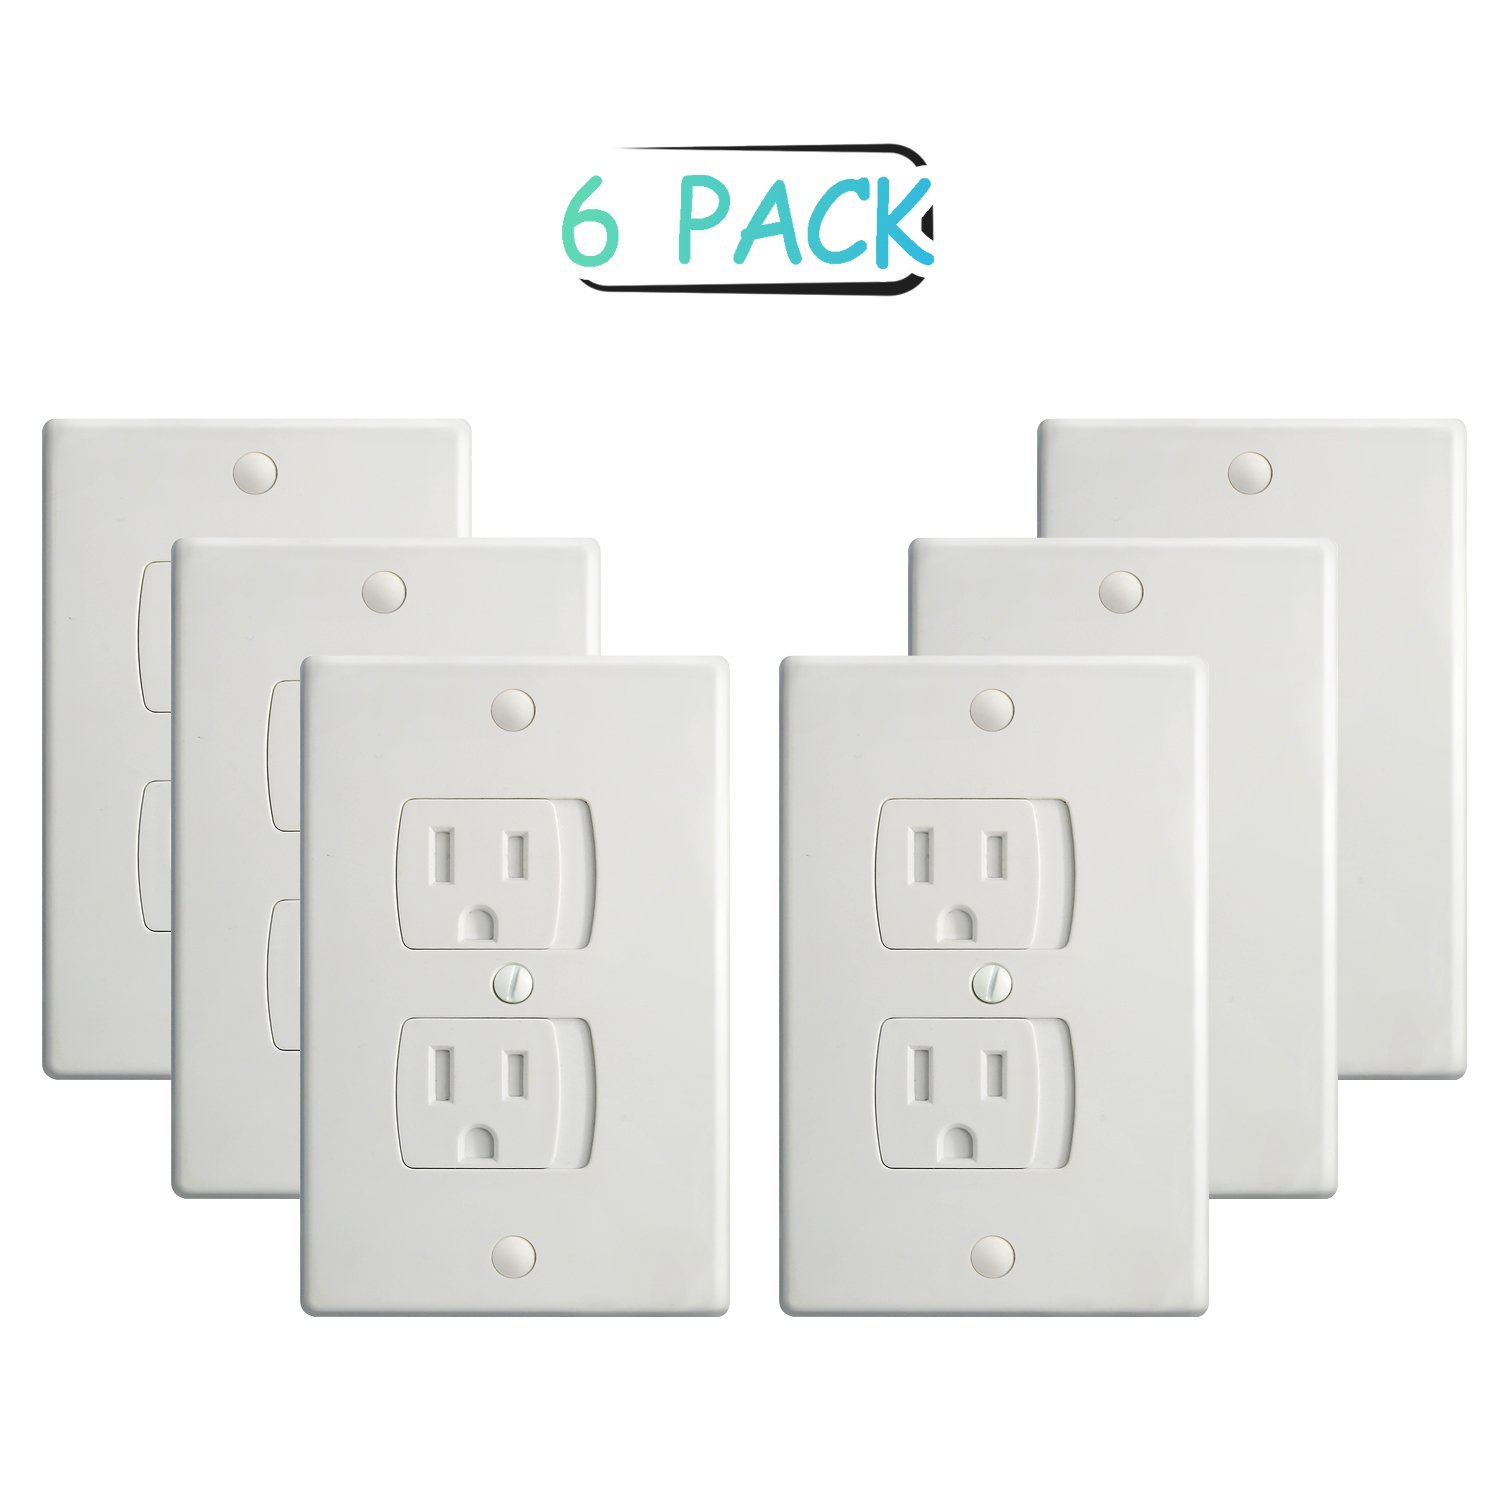 Amazon electrical safety baby products baby proof electrical outlet covers 6 pack self closing wall plug covers sciox Choice Image